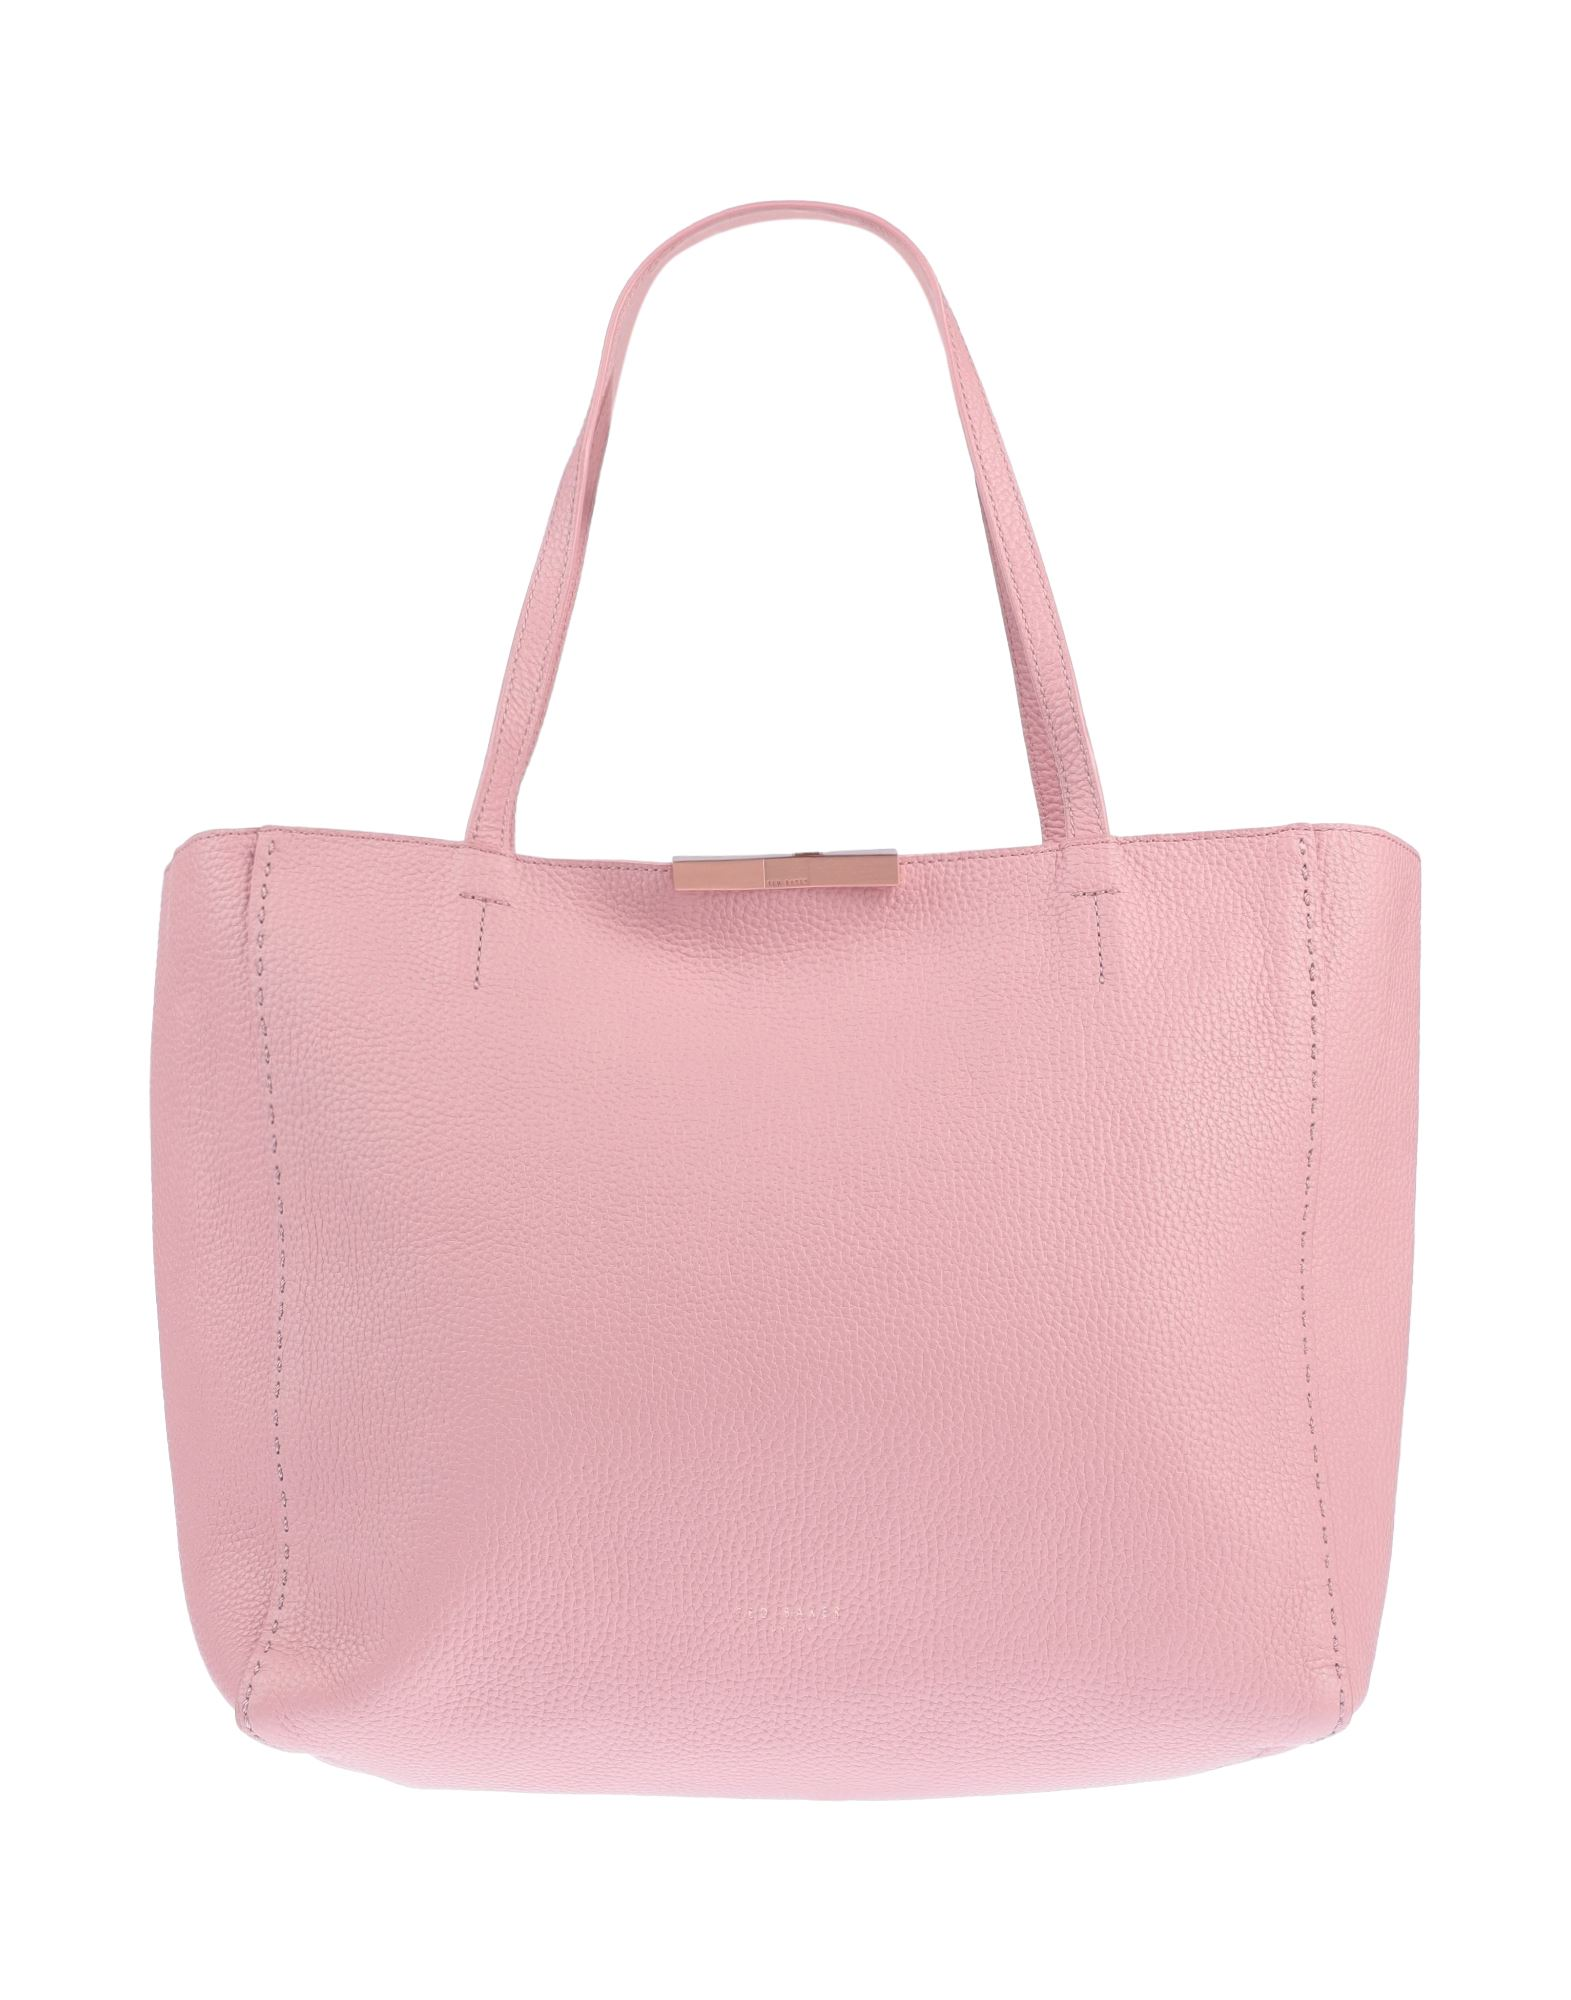 TED BAKER Handbags - Item 45554994